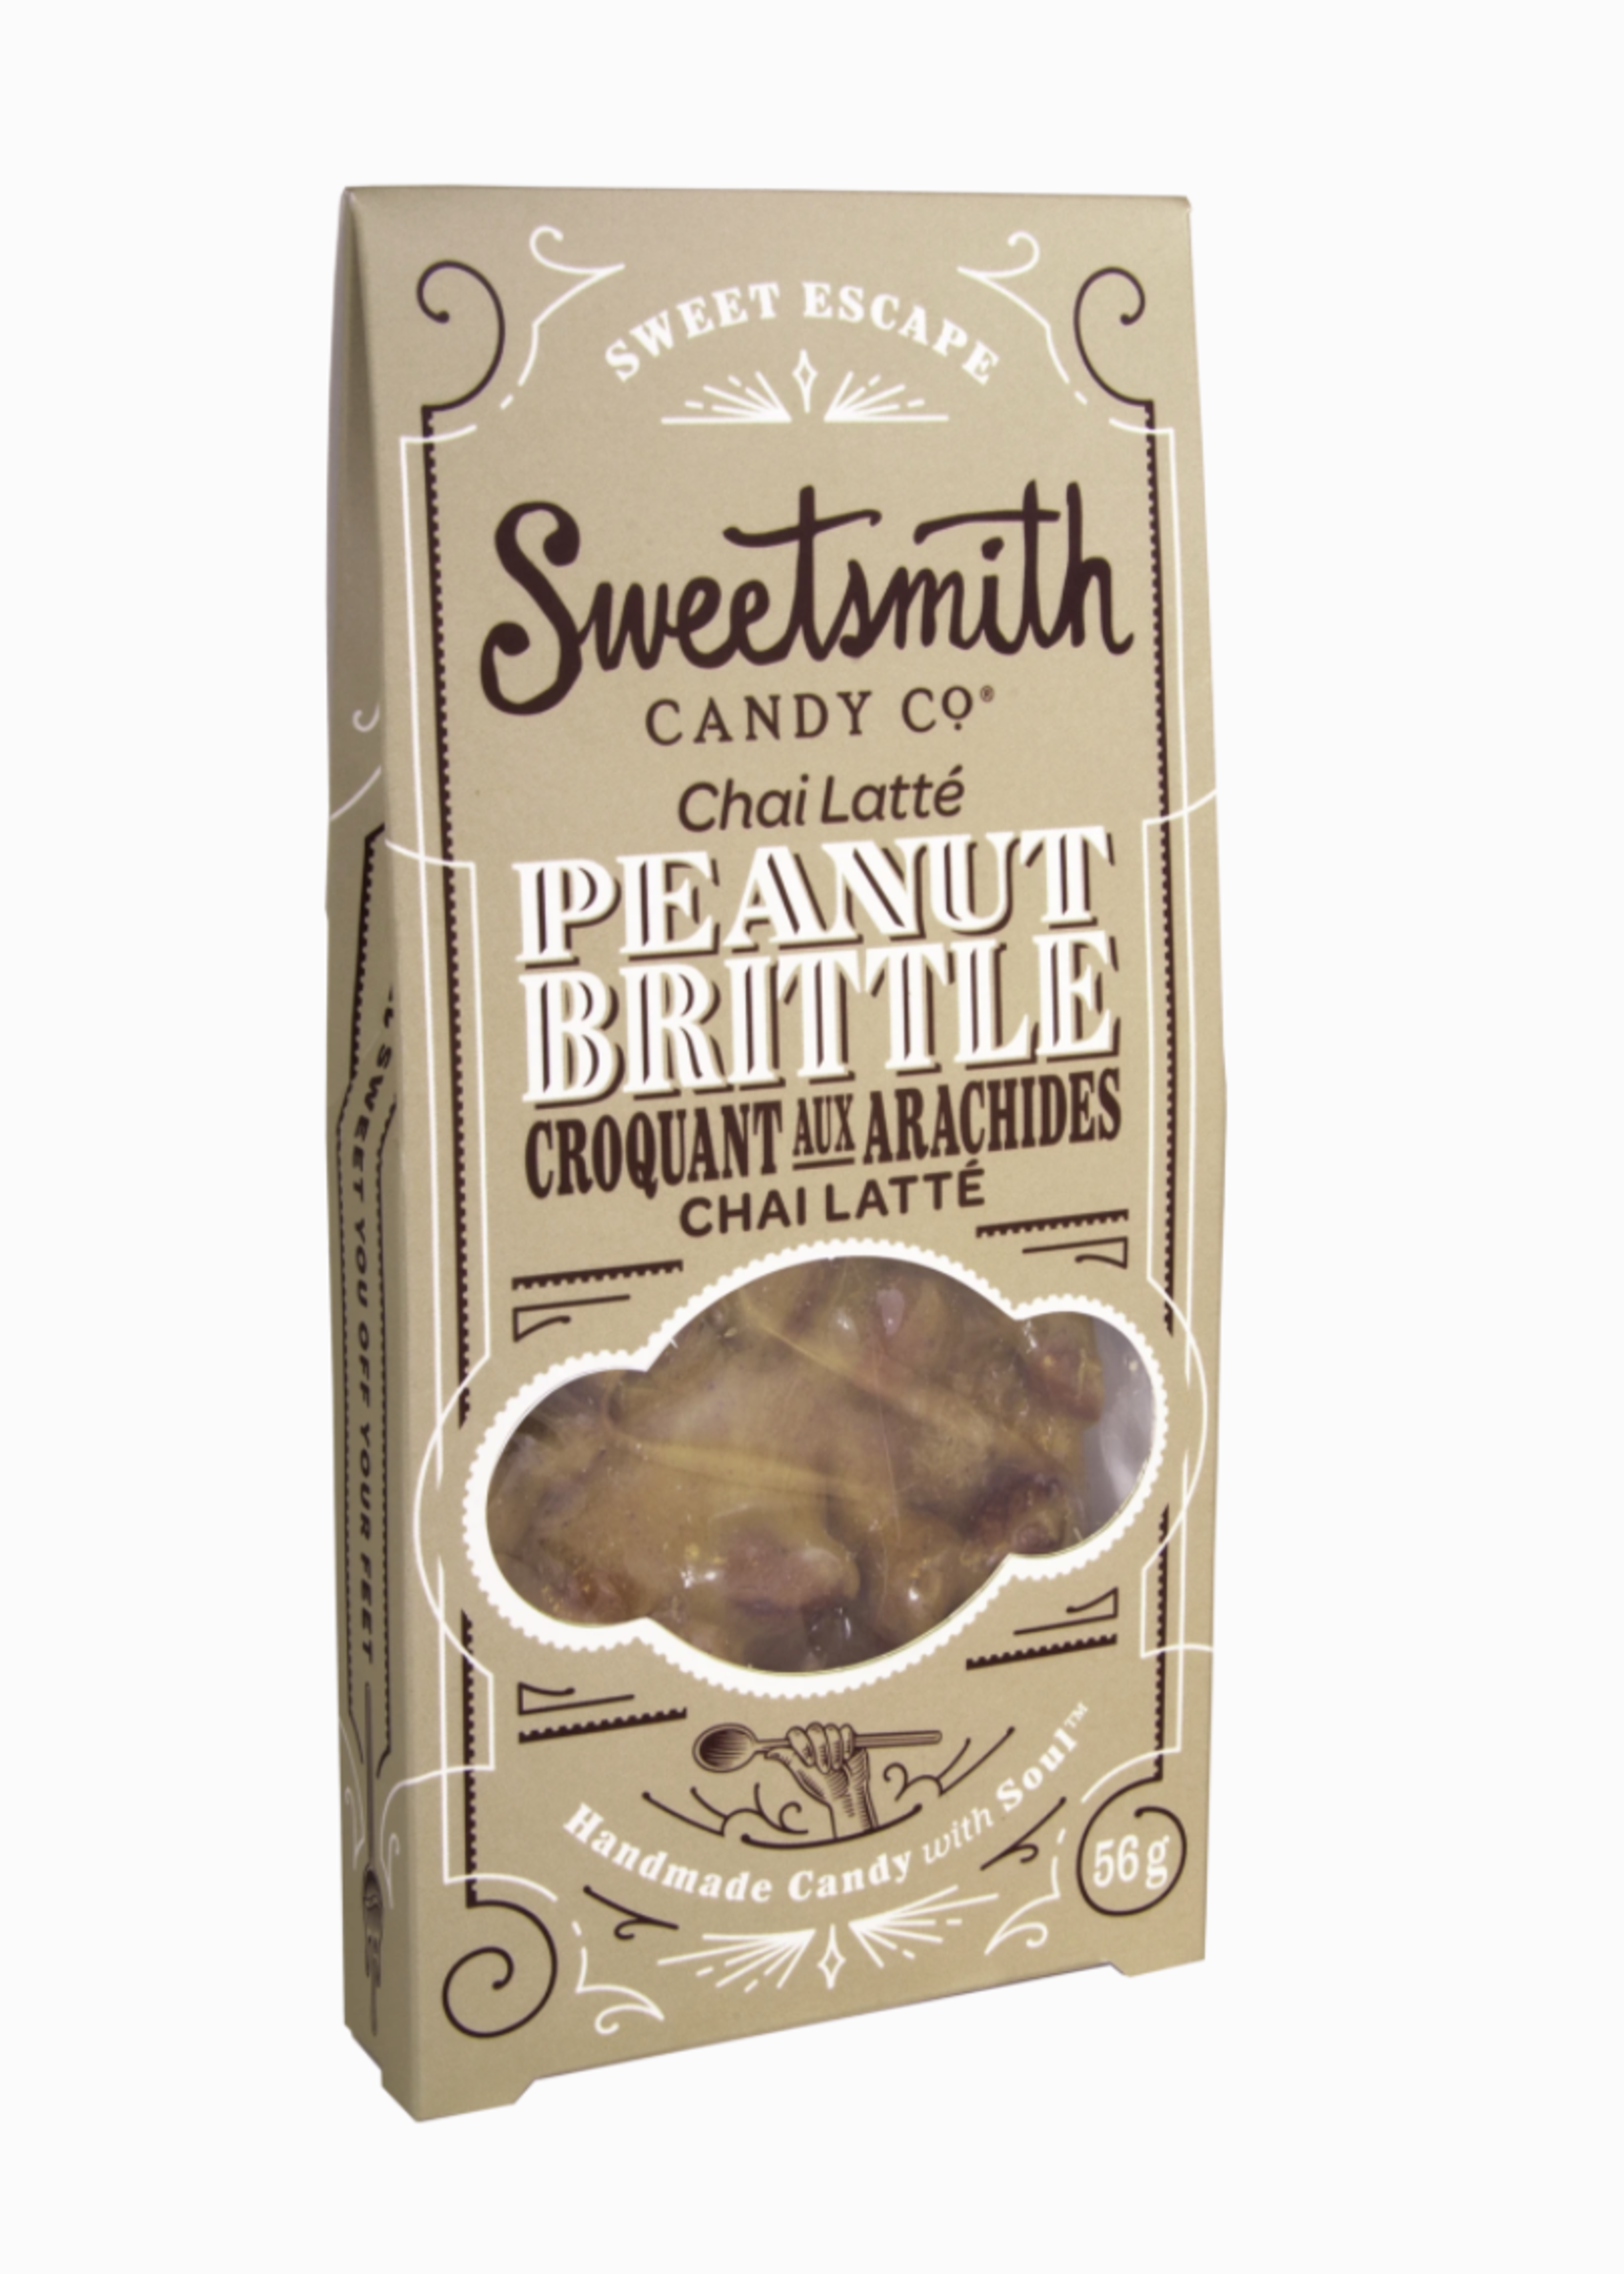 Sweetsmith Candy Co. Chai Latte Peanut Brittle